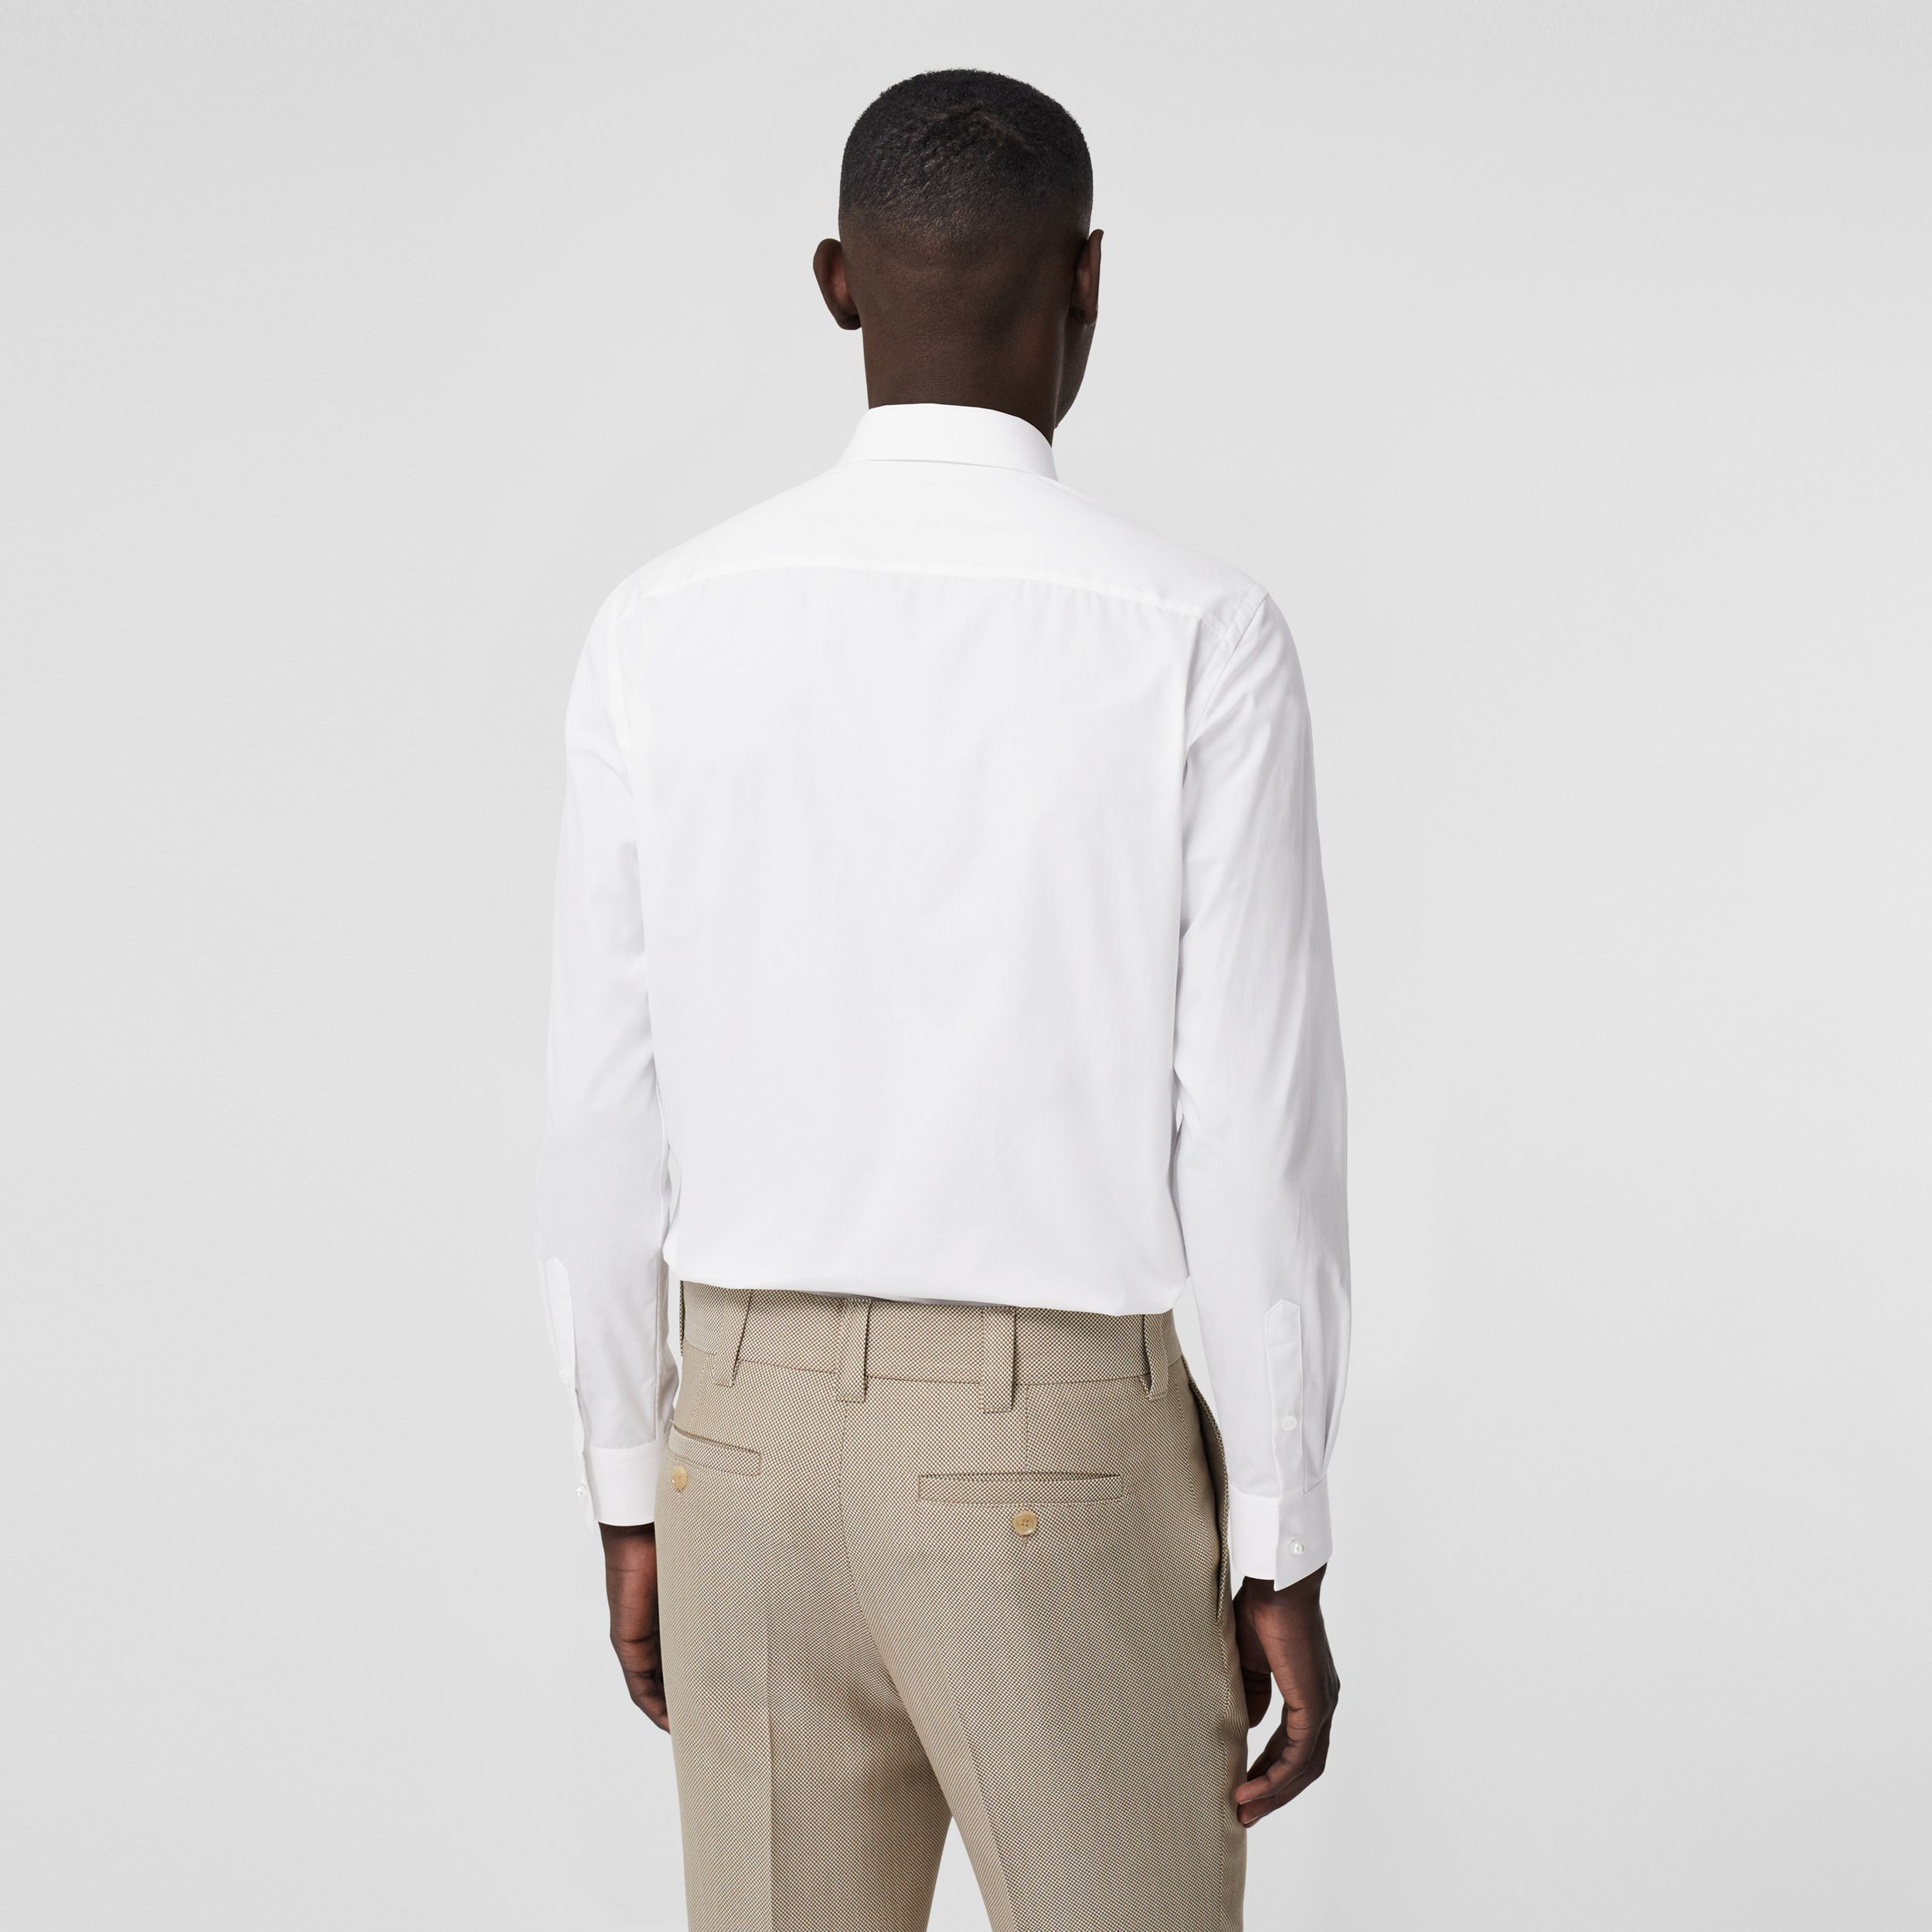 Resin Pearl Detail Cotton Poplin Dress Shirt in White - Men | Burberry - 3